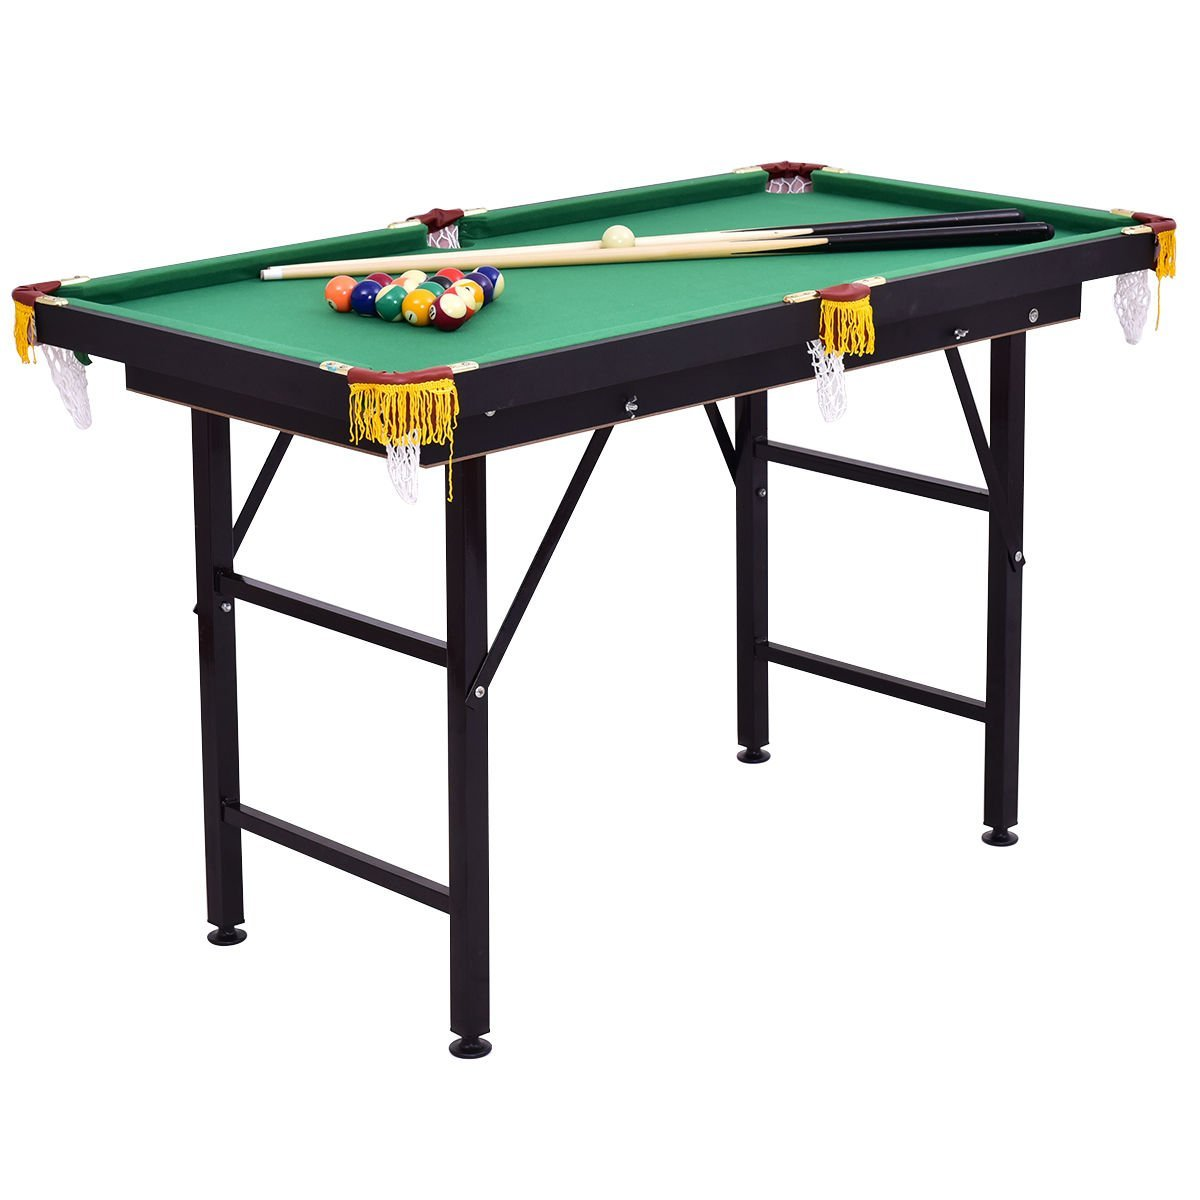 Of The Best Cheap Pool Tables For Game Room Experts - Best place to buy a pool table